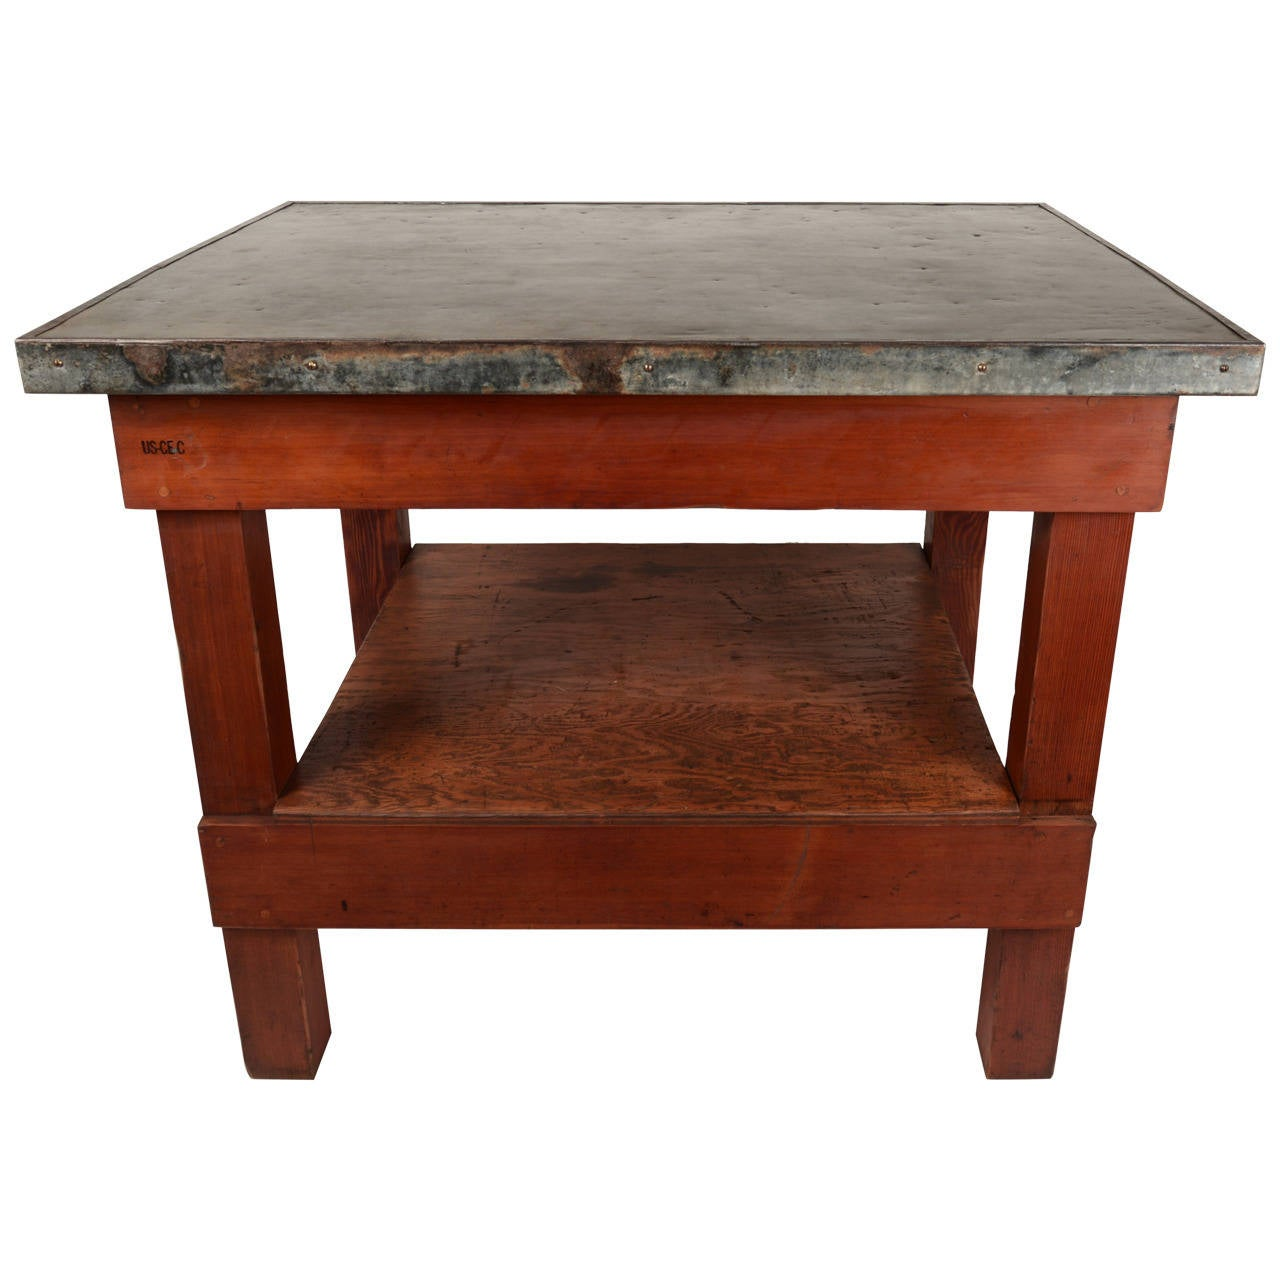 Army corps cement testing table at 1stdibs for Furniture work table